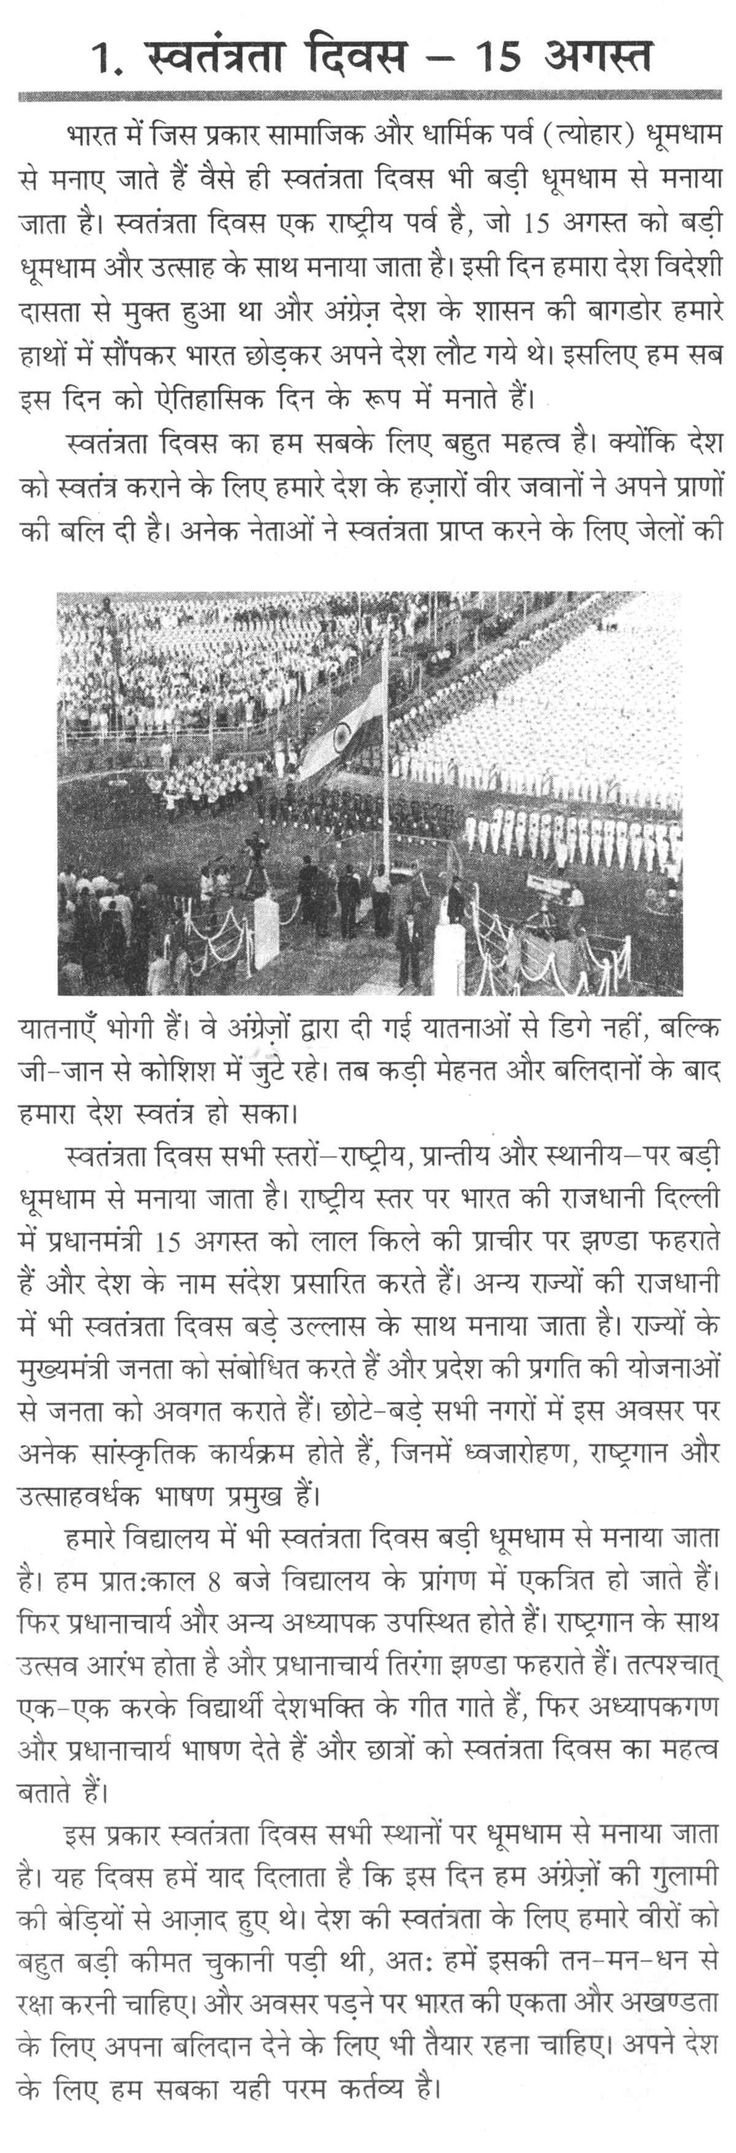 best independence day images independence 15th speech 2015